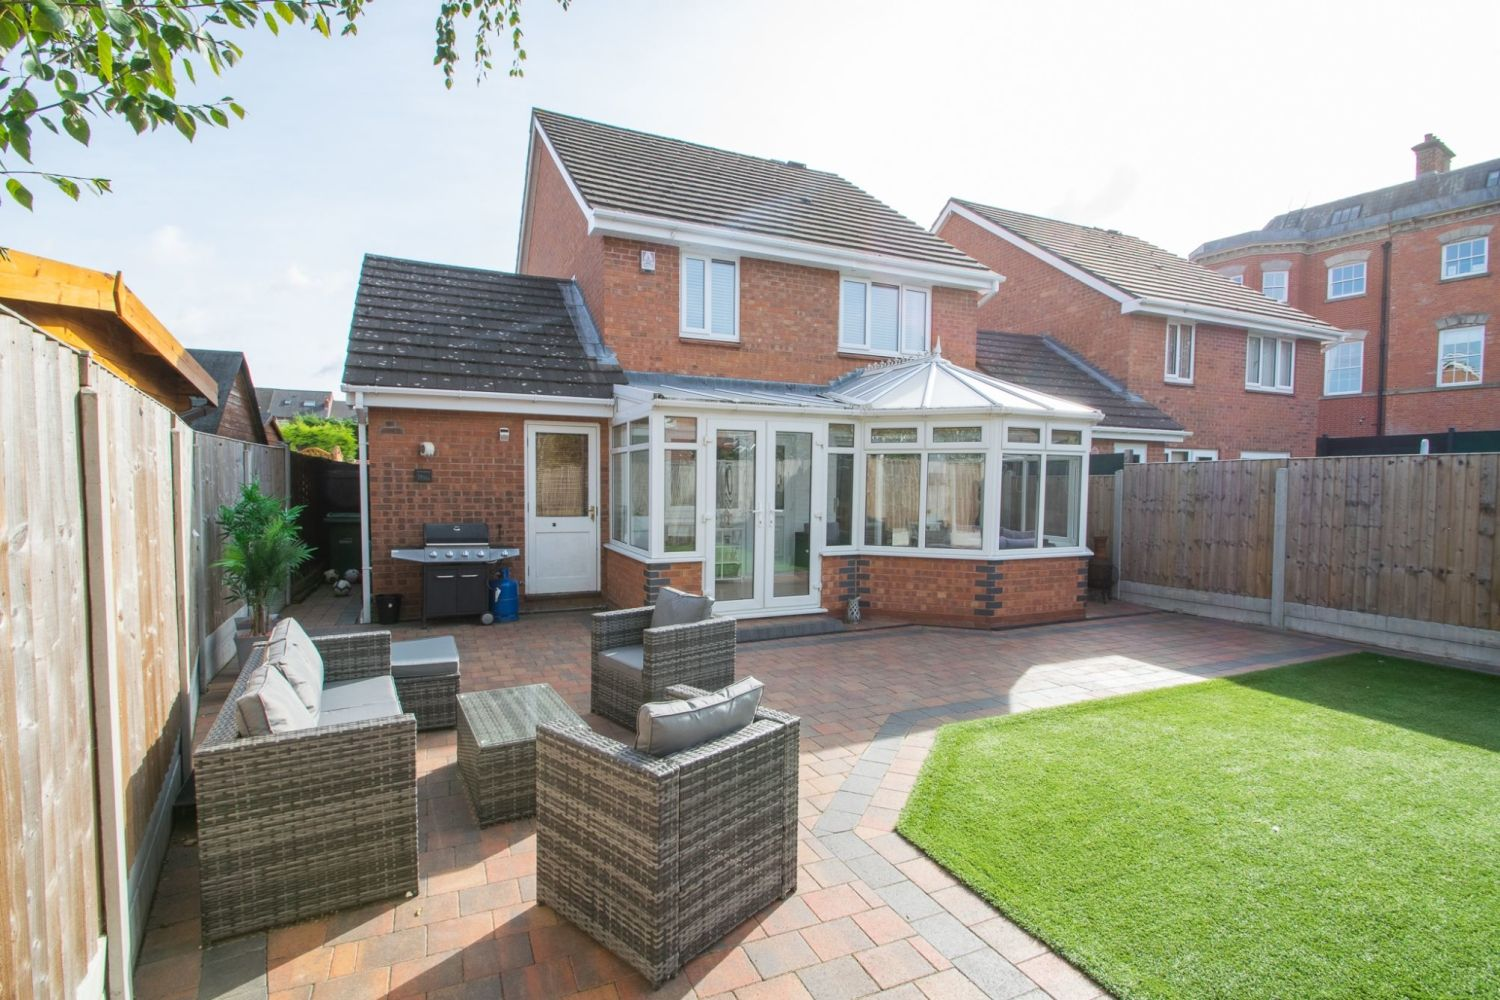 3 bed detached for sale in Batchelor Close, Amblecote  - Property Image 23